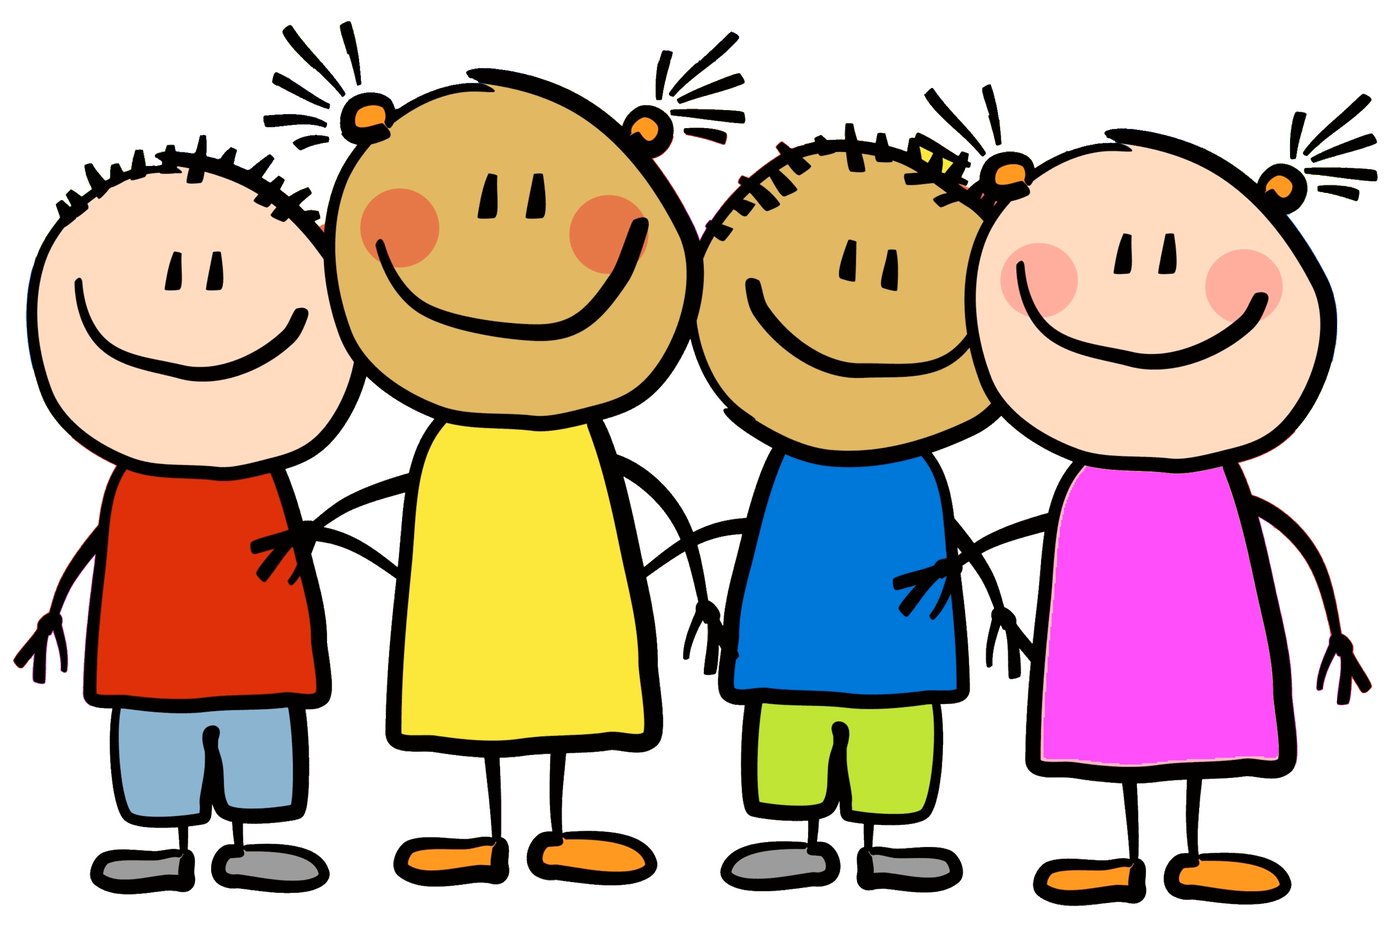 Friendly clipart kindness child, Picture #1166334 friendly clipart ...